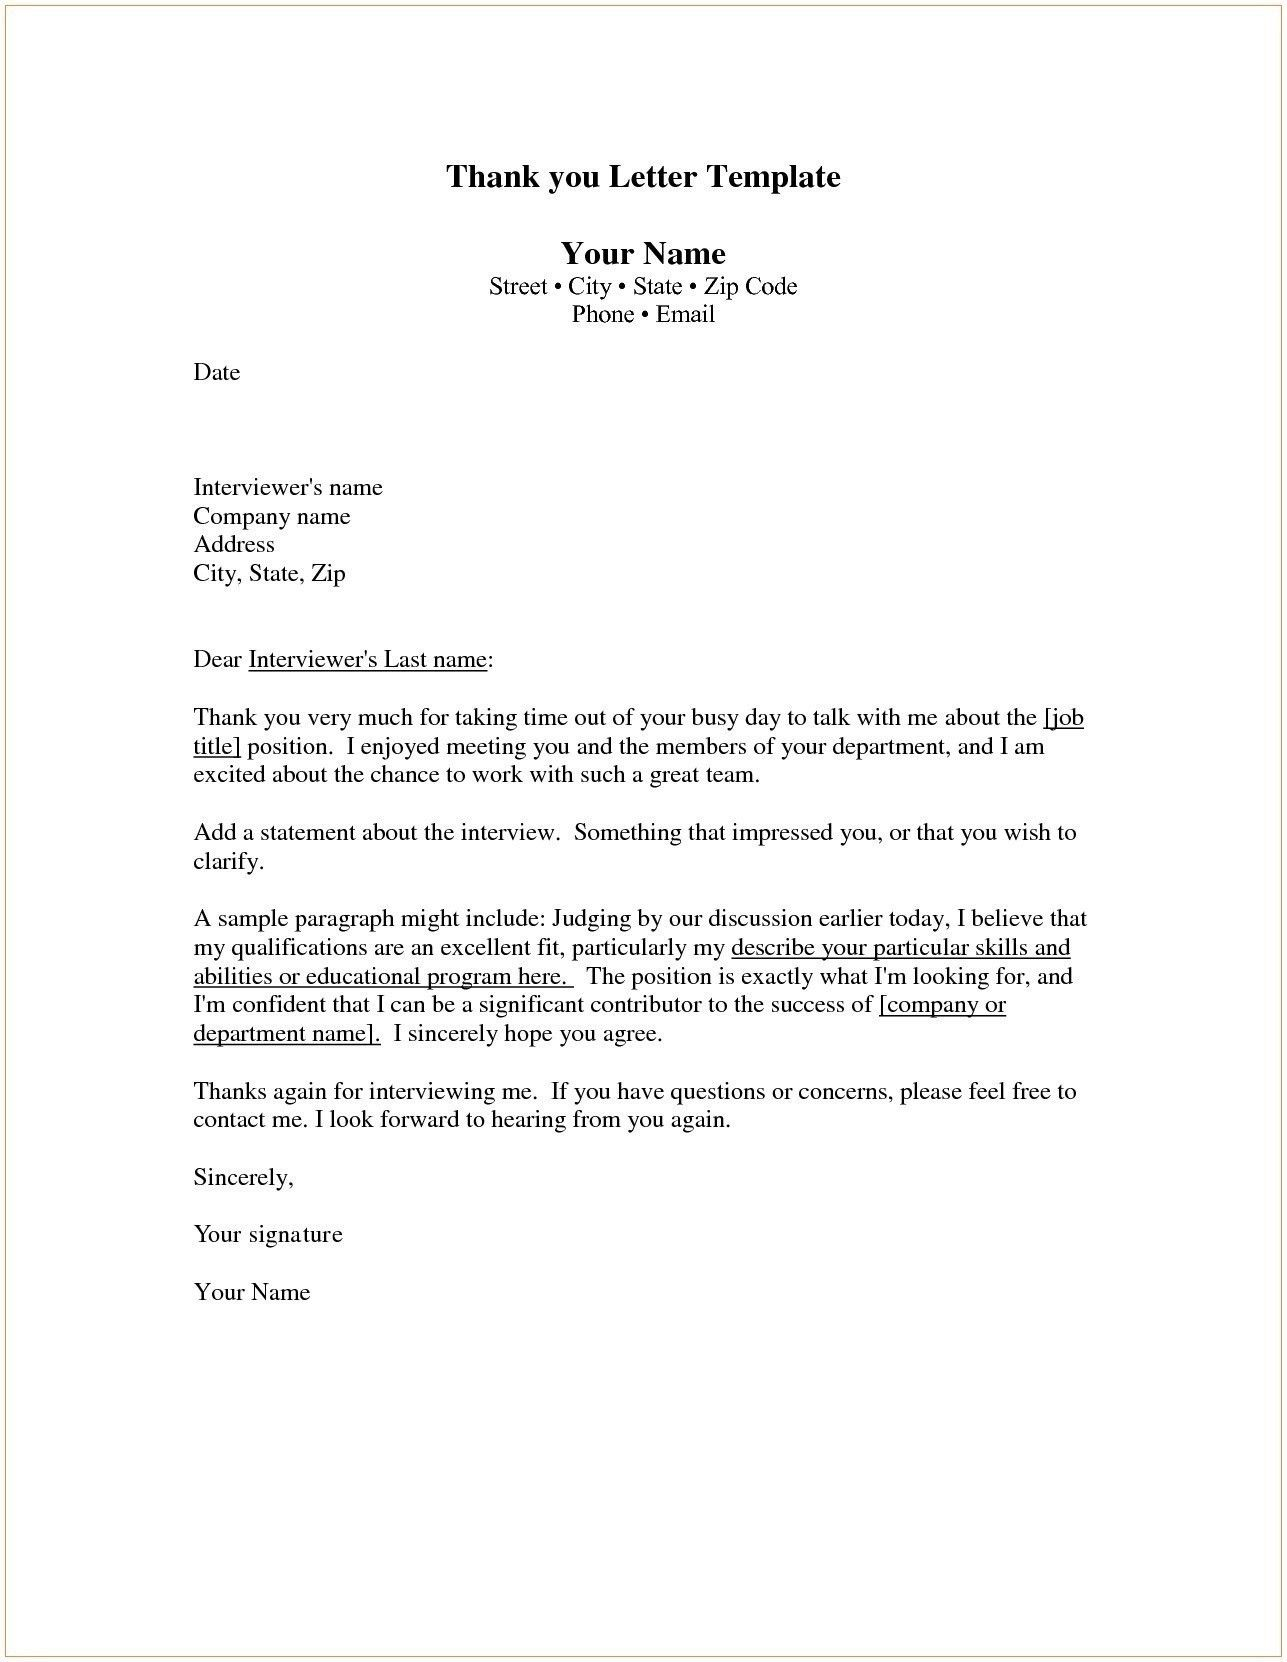 Download New Thank You Letter for Job Interview Examples